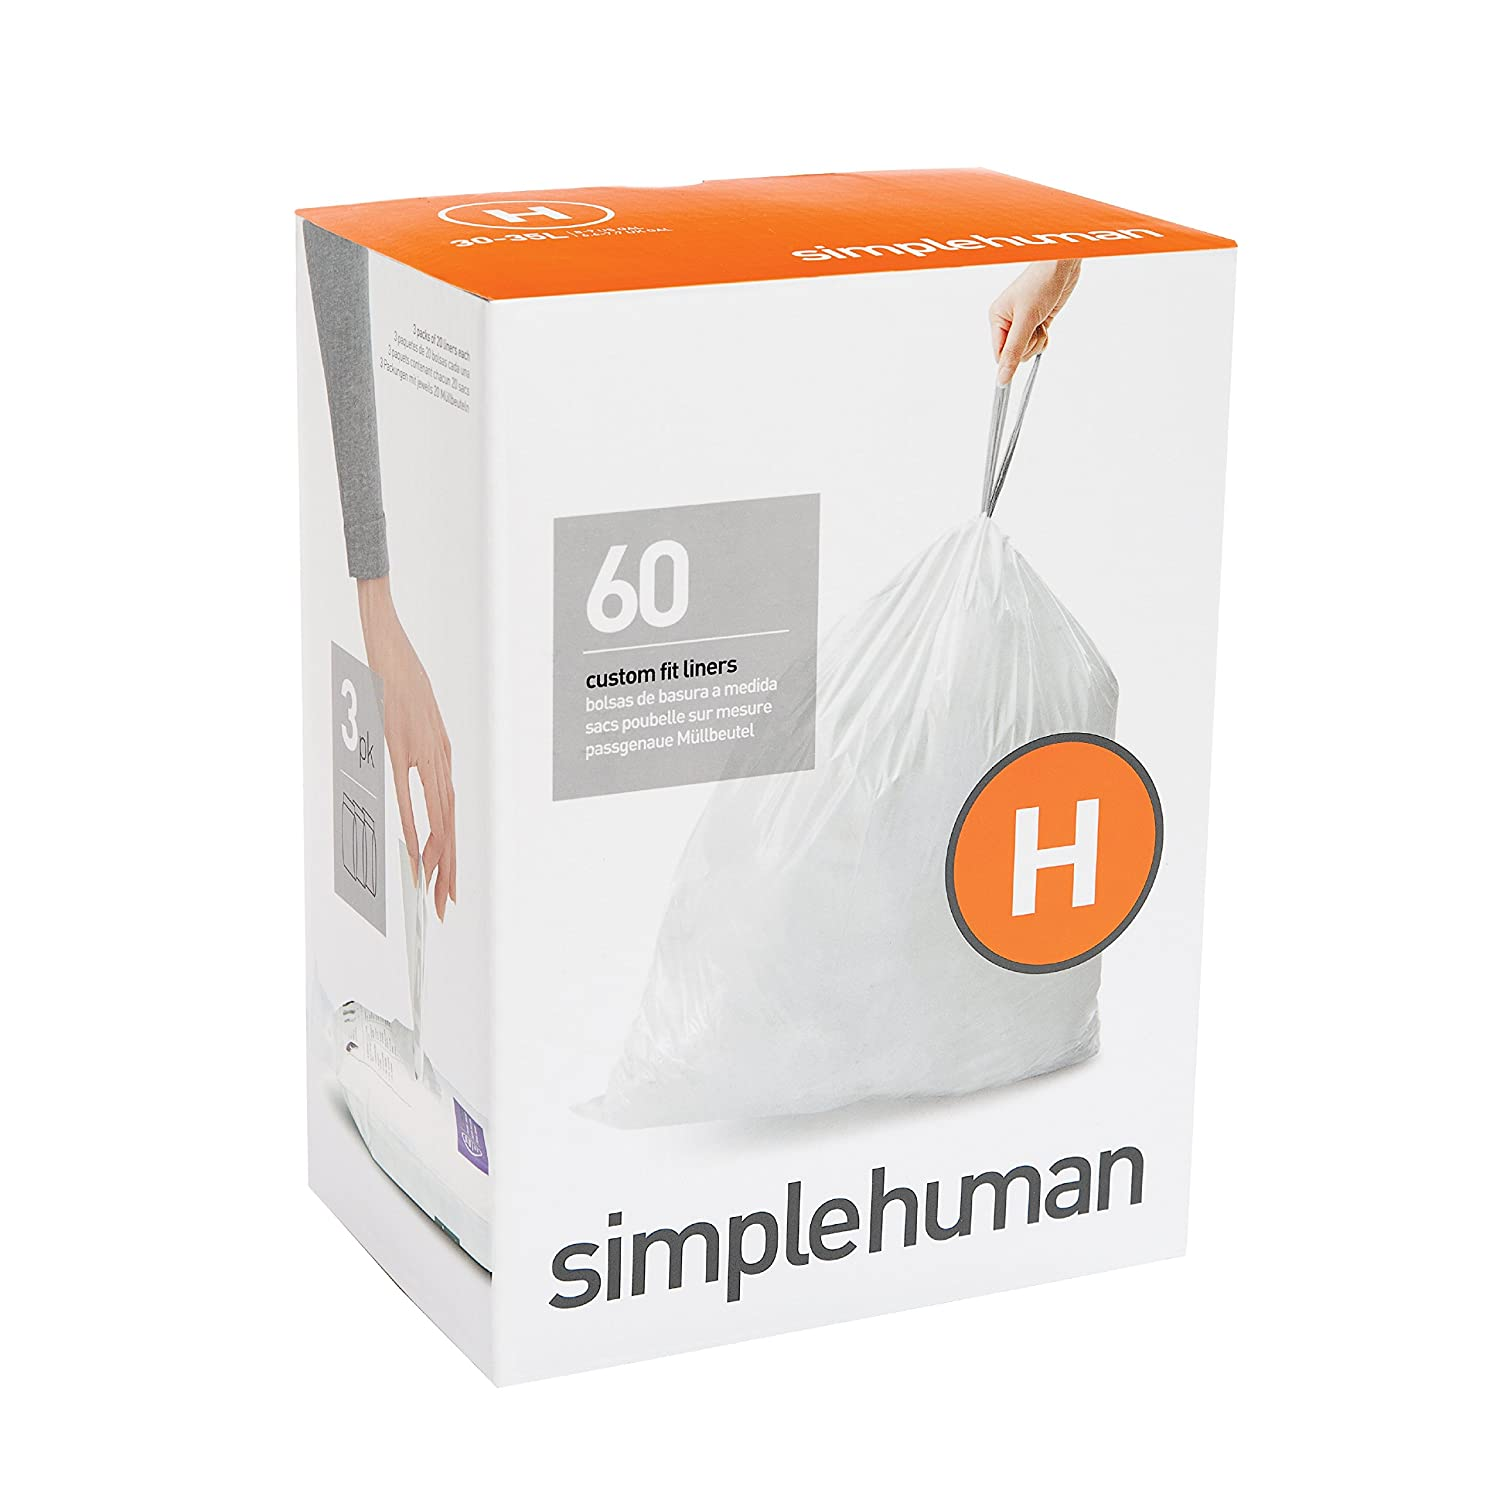 Amazon.com: Simplehuman Code H Custom Fit Liners, Drawstring Trash Bags,  30 35 Liter / 8 9 Gallon, 3 Refill Packs (60 Count): Home U0026 Kitchen